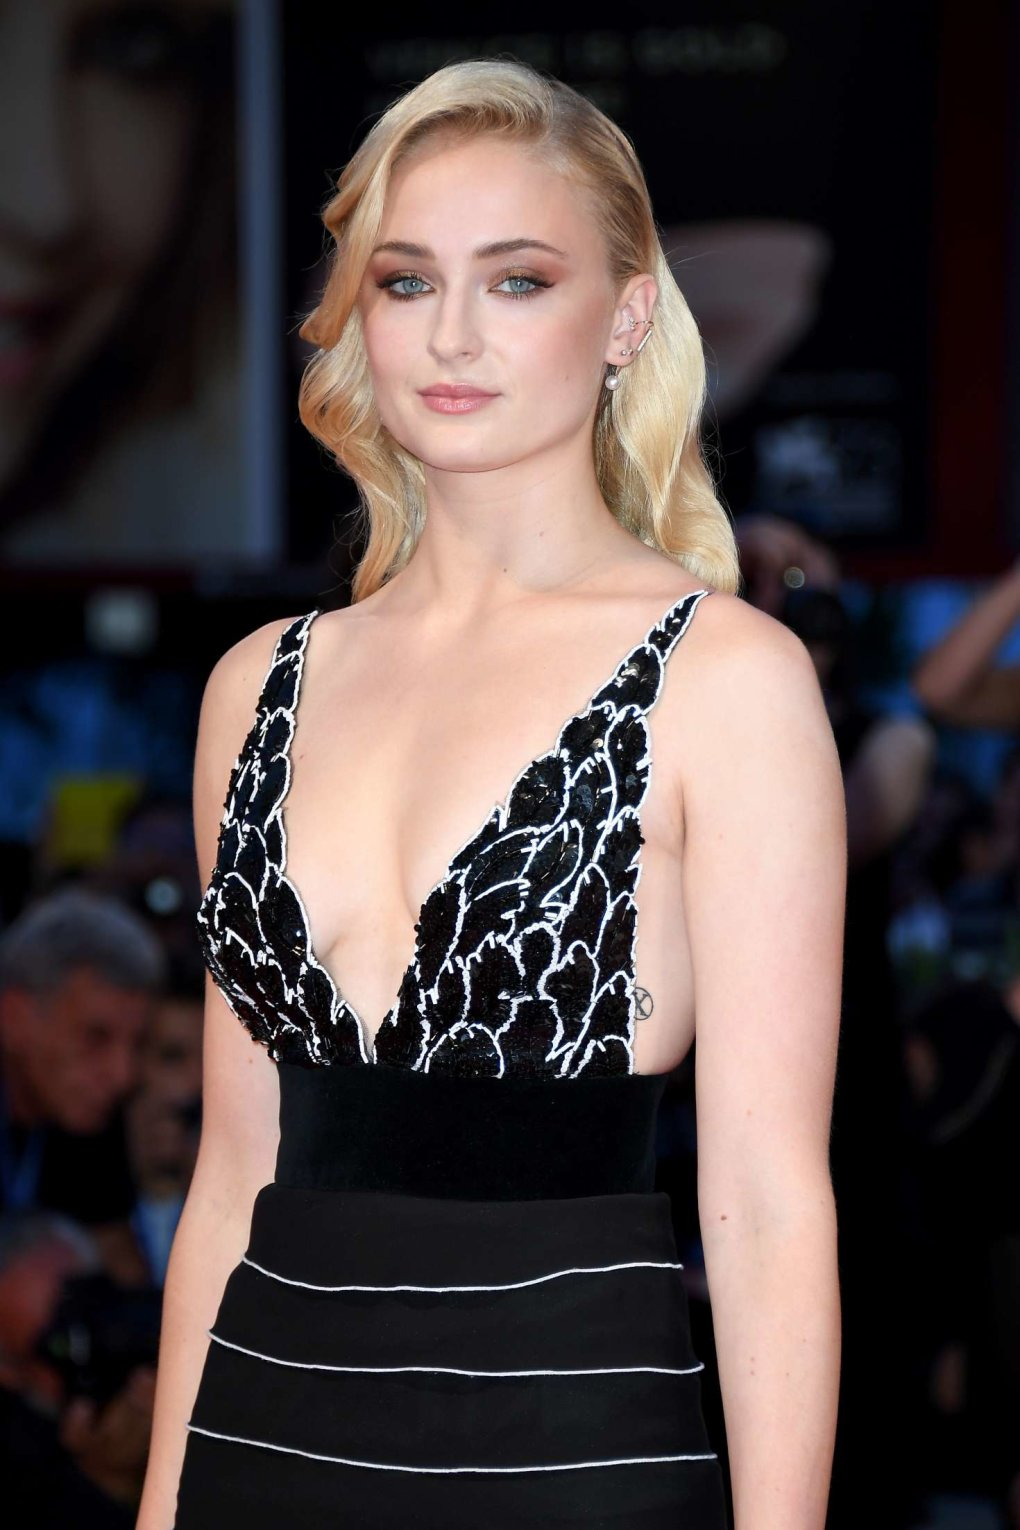 70 Hot And Sexy Sophie Turner Photos - Barnorama